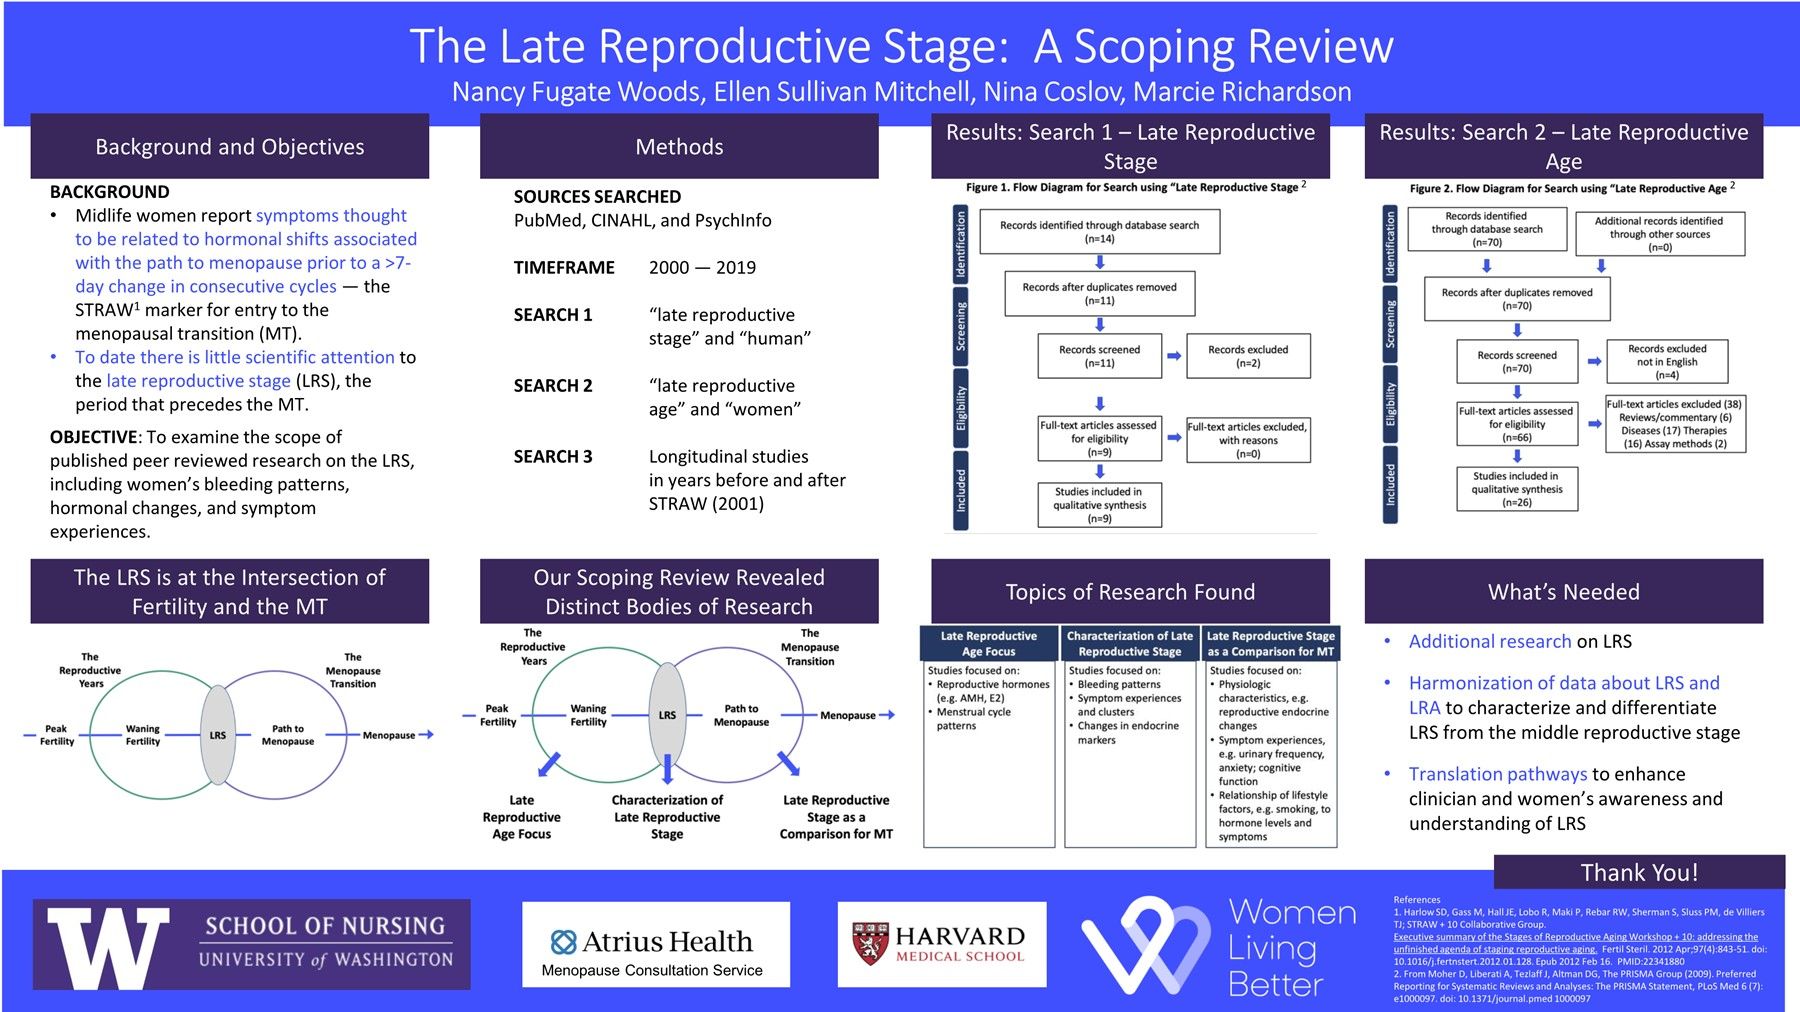 The Late Reproductive Stage: A Scoping Review